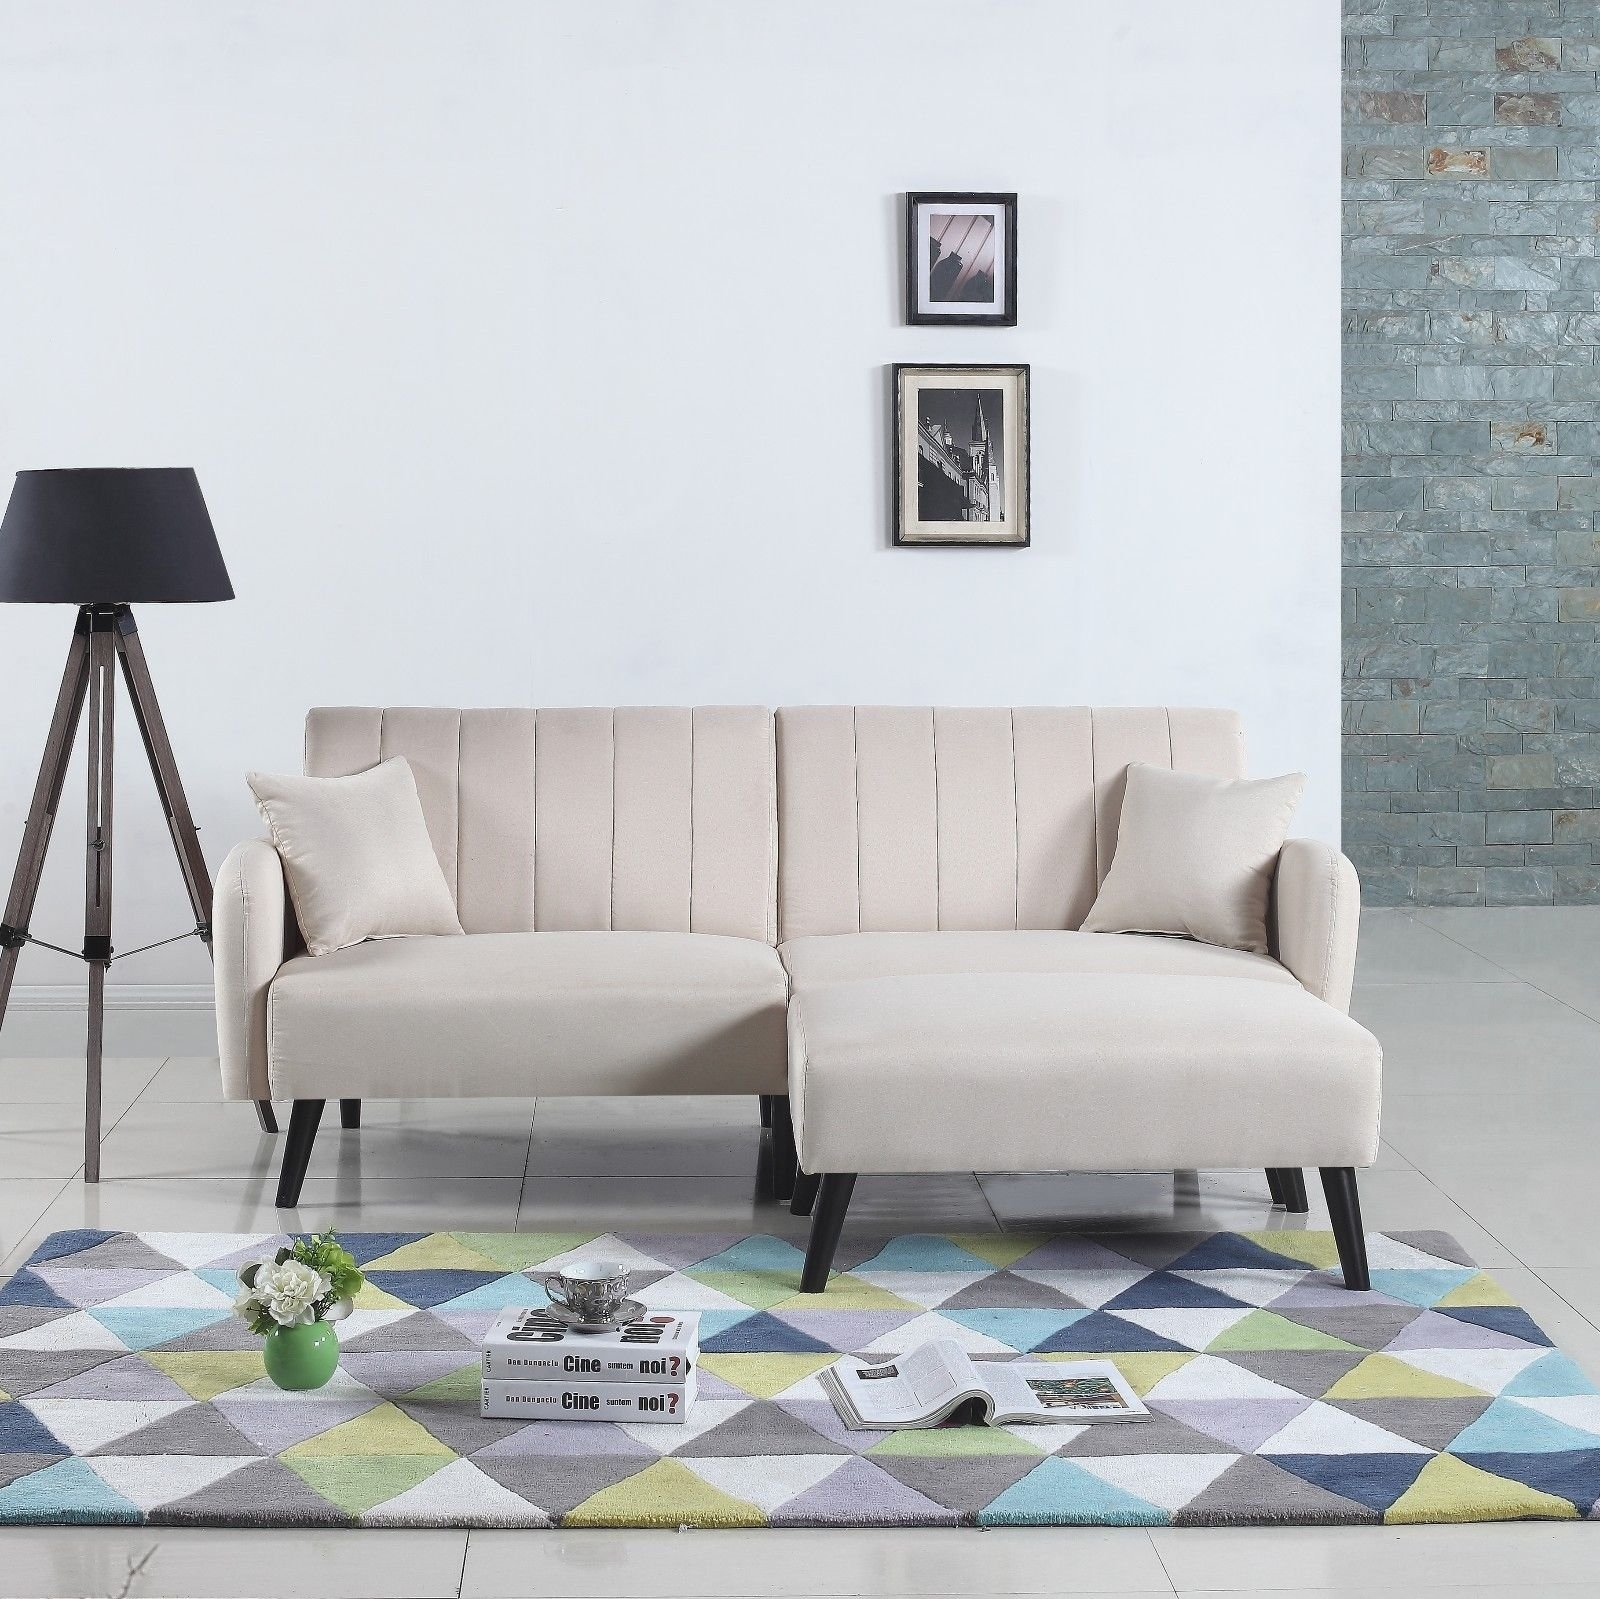 Details About Contemporary Small Space Fabric Futon Sofa Bed Living Room Sleeper Couch Beige